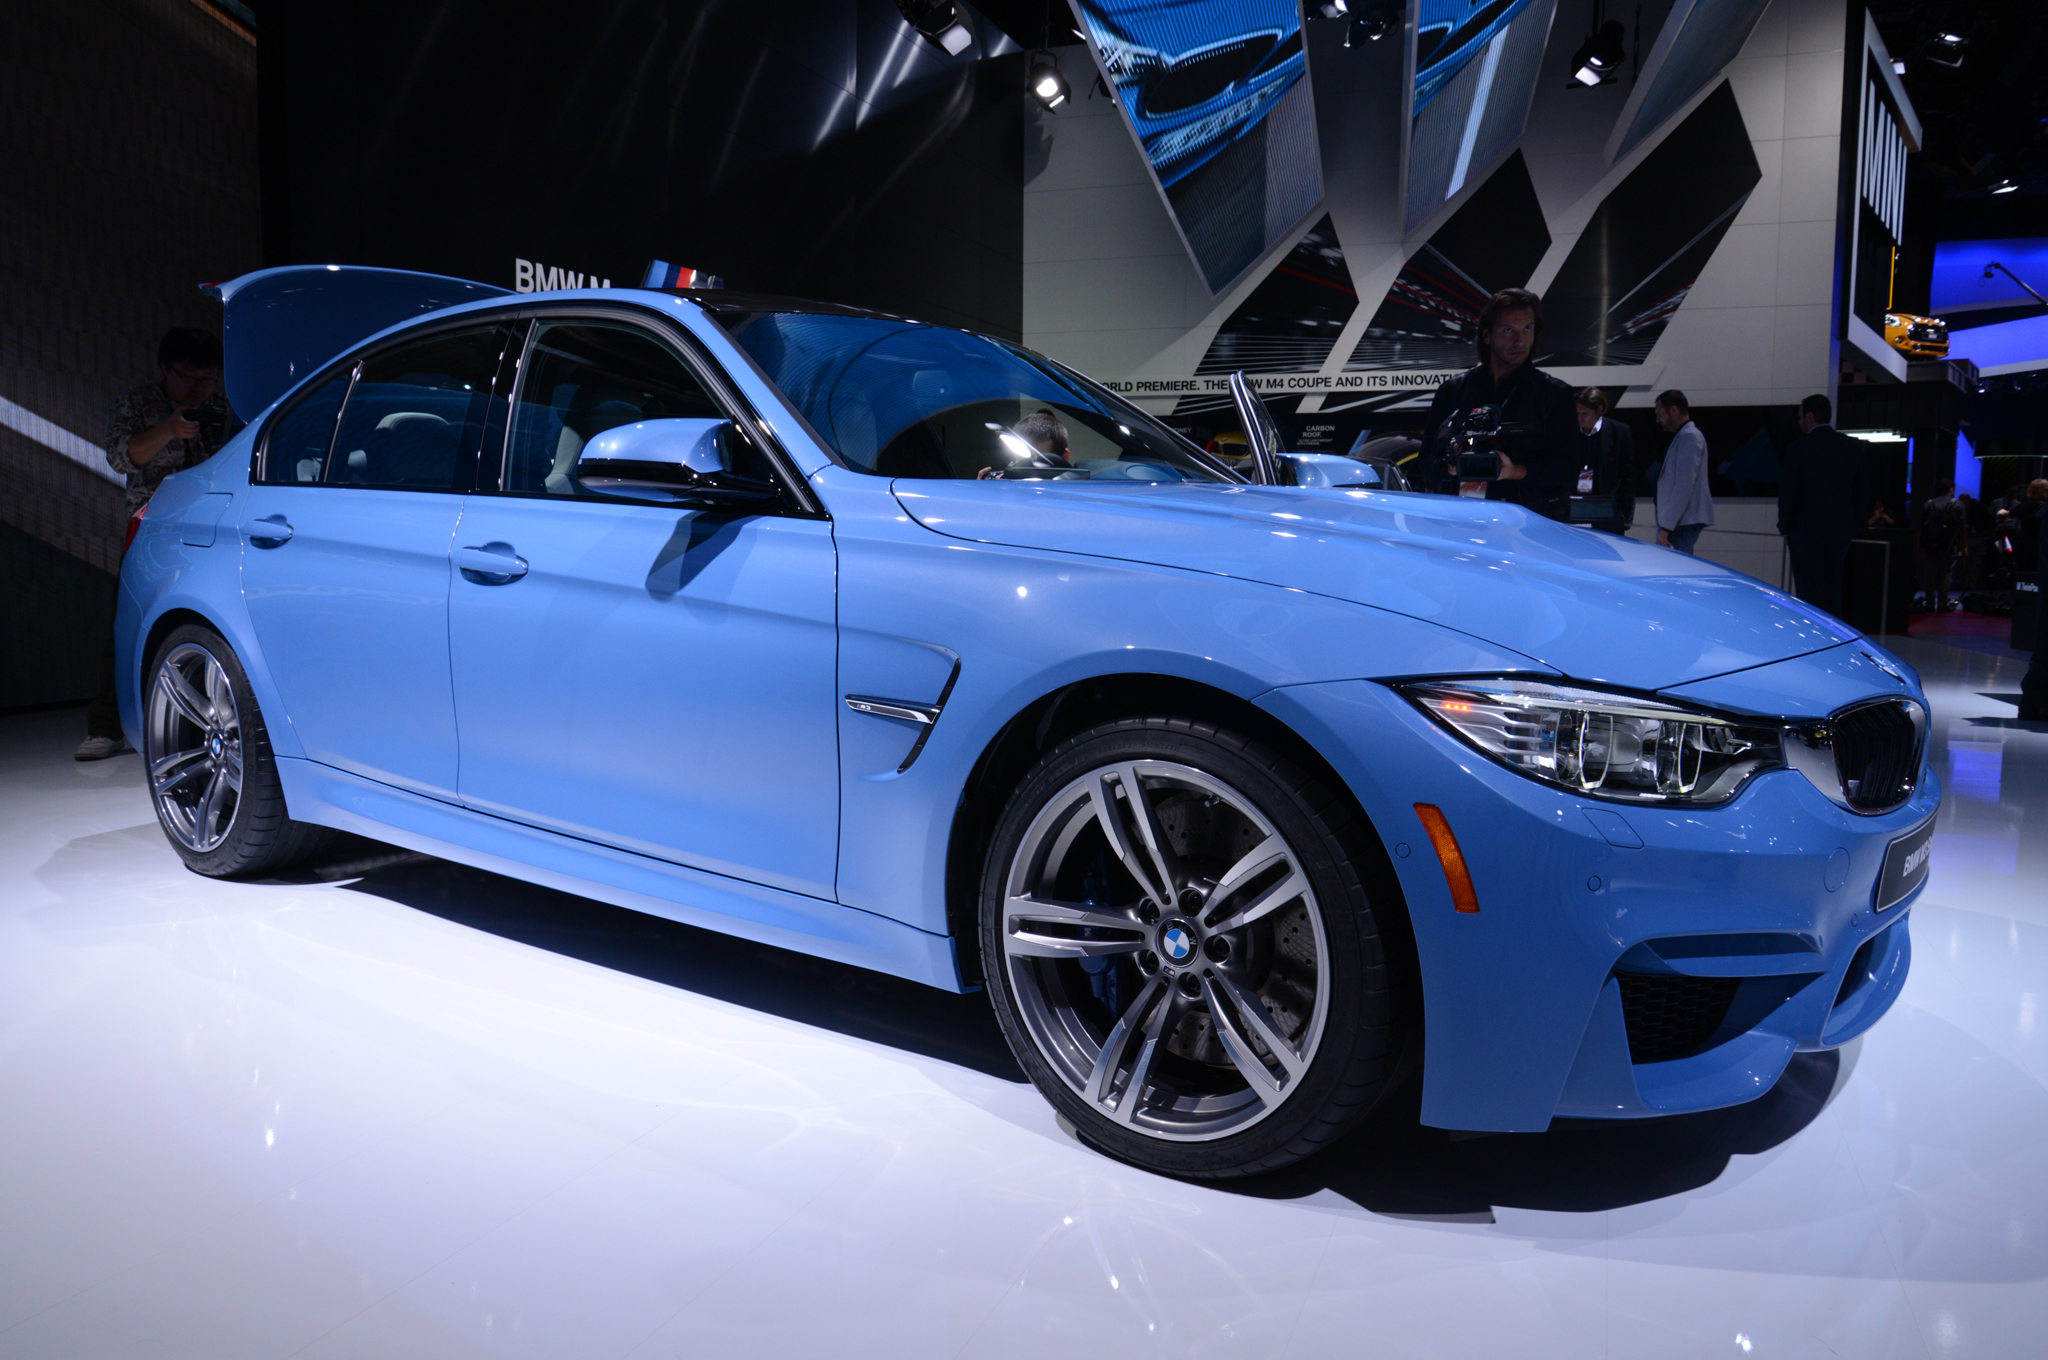 2015 BMW M3 / M4 First Look - Motor Trend